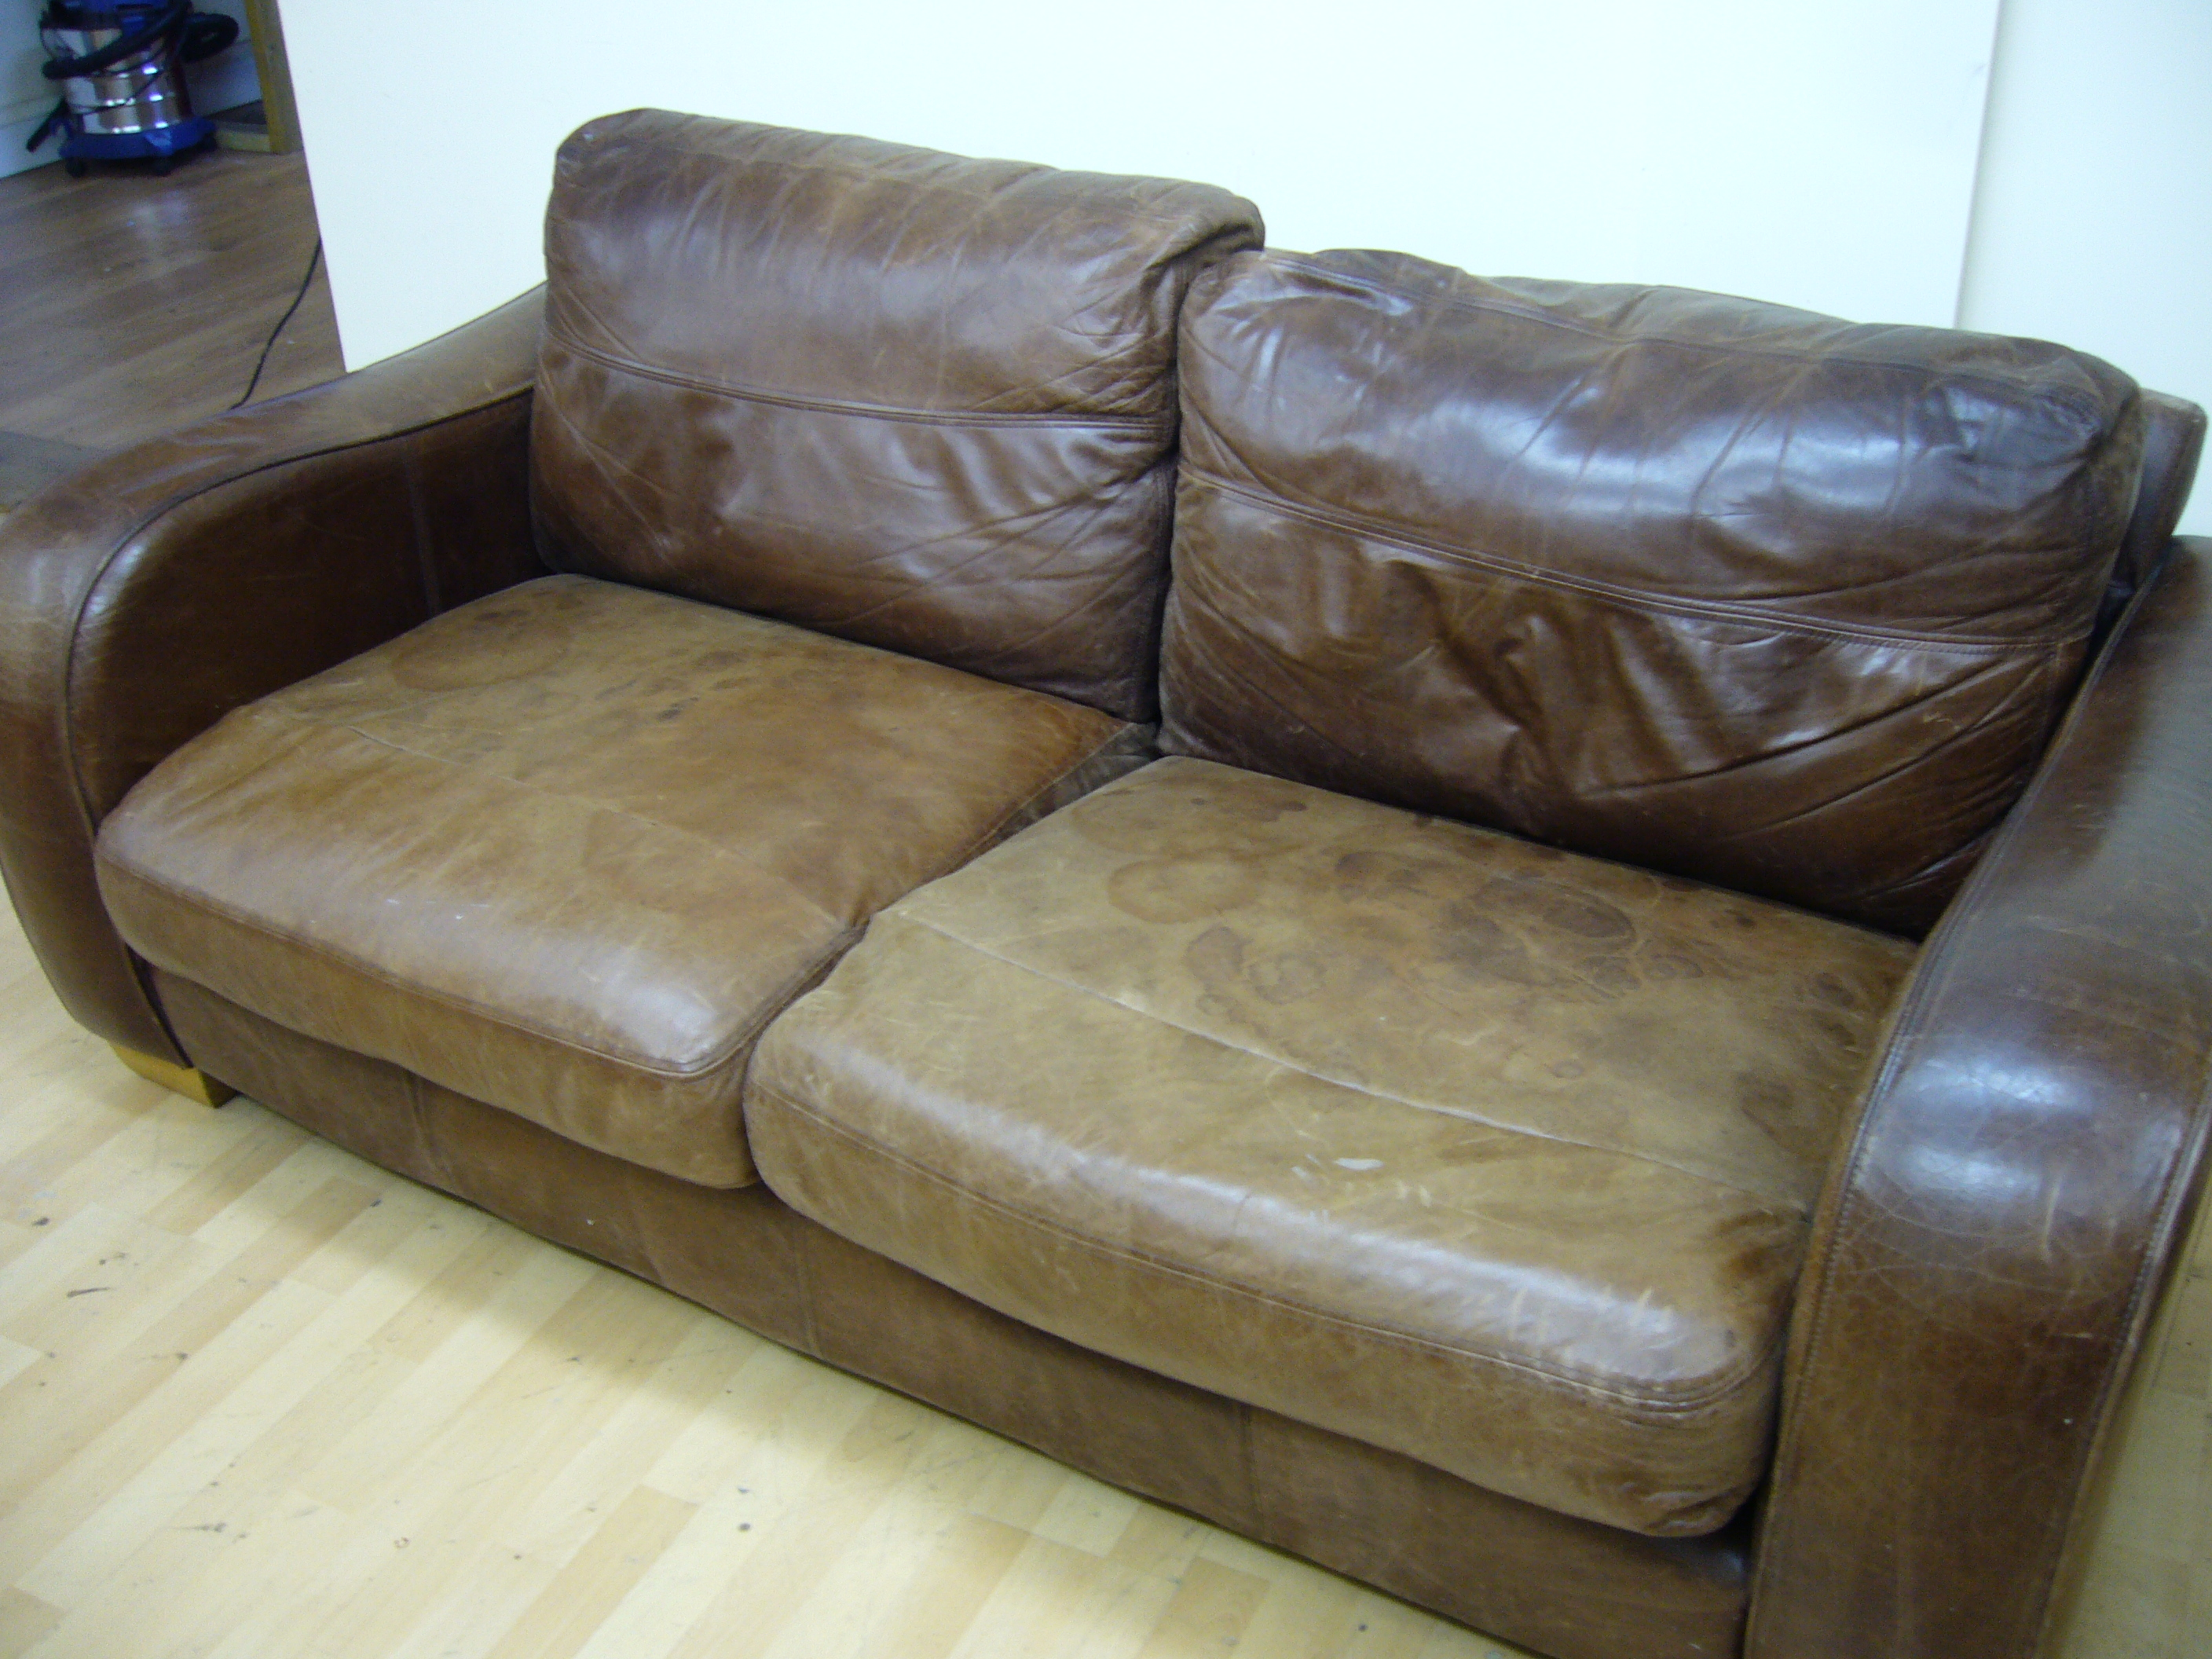 Aniline sofa, seriously stained!